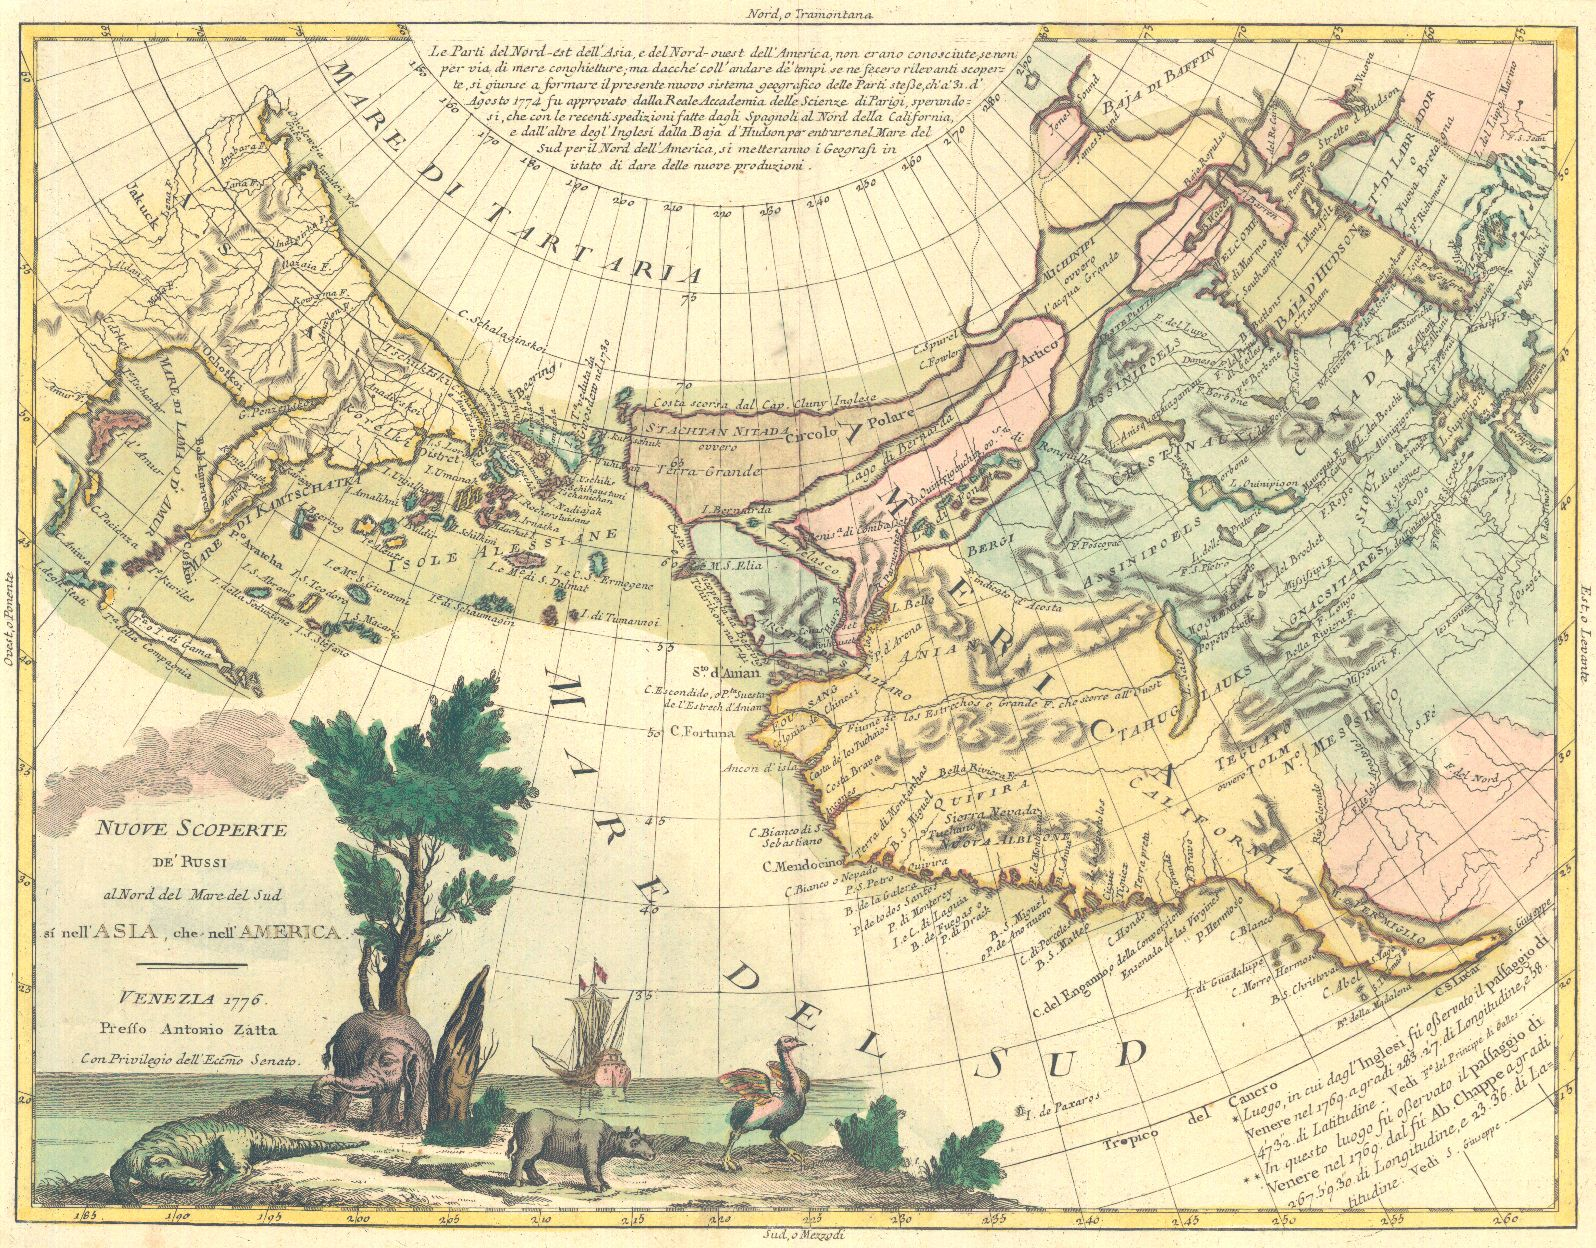 Antonio zatta nuove scoperte derussi al nord del mare del sud si world map old maps world map print 146 by mapsandposters on etsy gumiabroncs Images